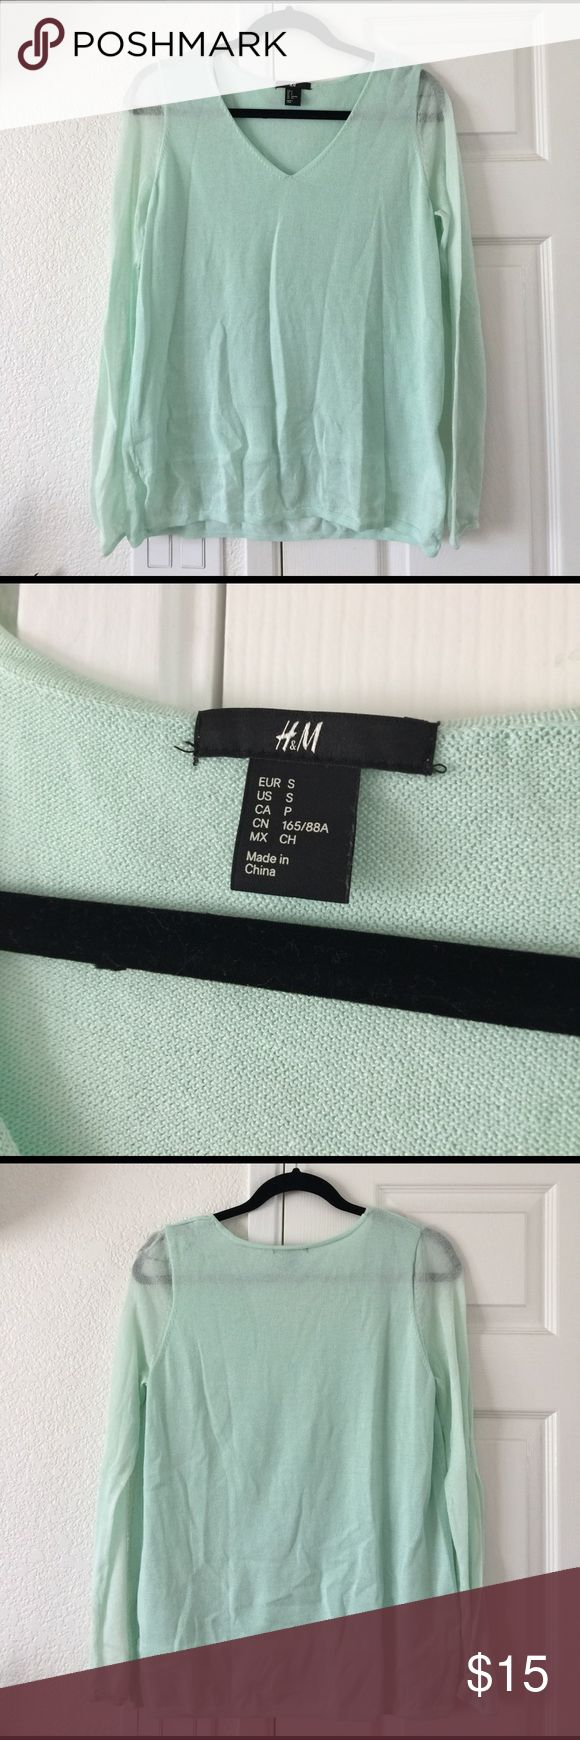 H&M spring collection mint blouse H&M spring collection mint blouse. Size small. Sheer sleeves as shown. V-neck cut. Lined inside. Perfect for spring going into summer. In excellent condition. Worn once. 50% polyester 50% viscose. H&M Tops Blouses